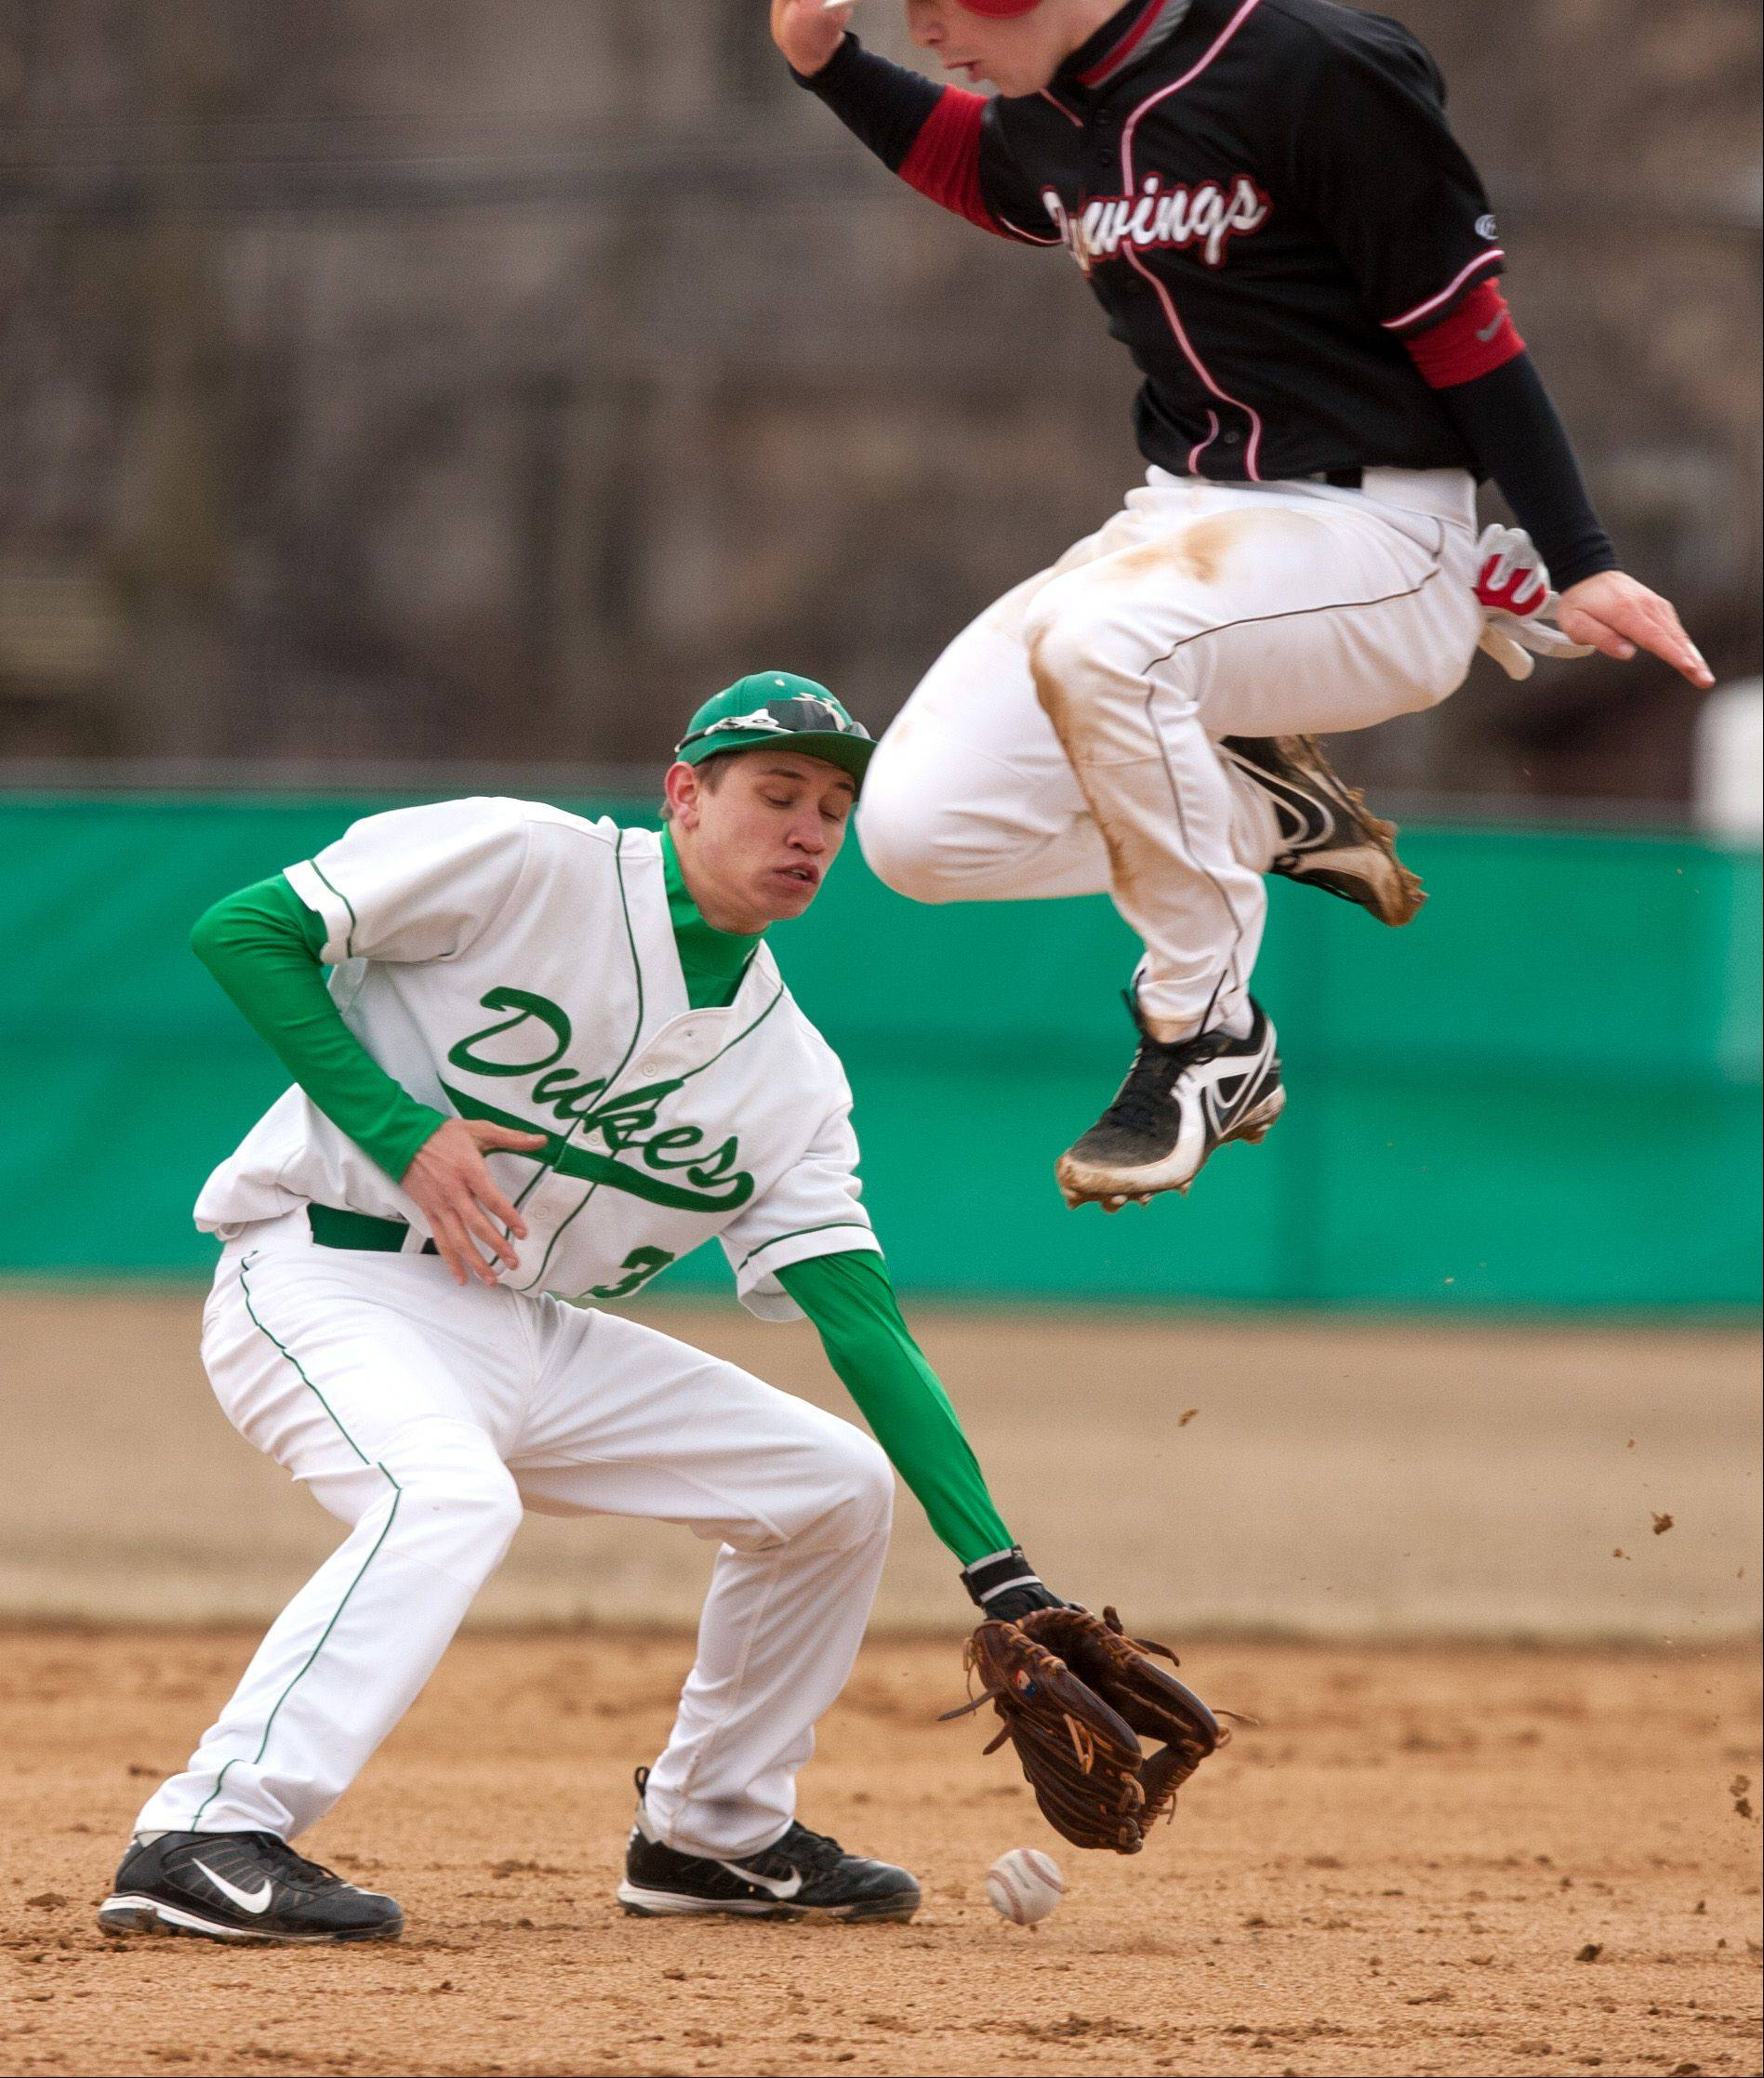 Benet's Joe Boyle jumps to avoid getting hit by the ball as York's Tyler Zunkel looks to field the ball in Elmhurst.